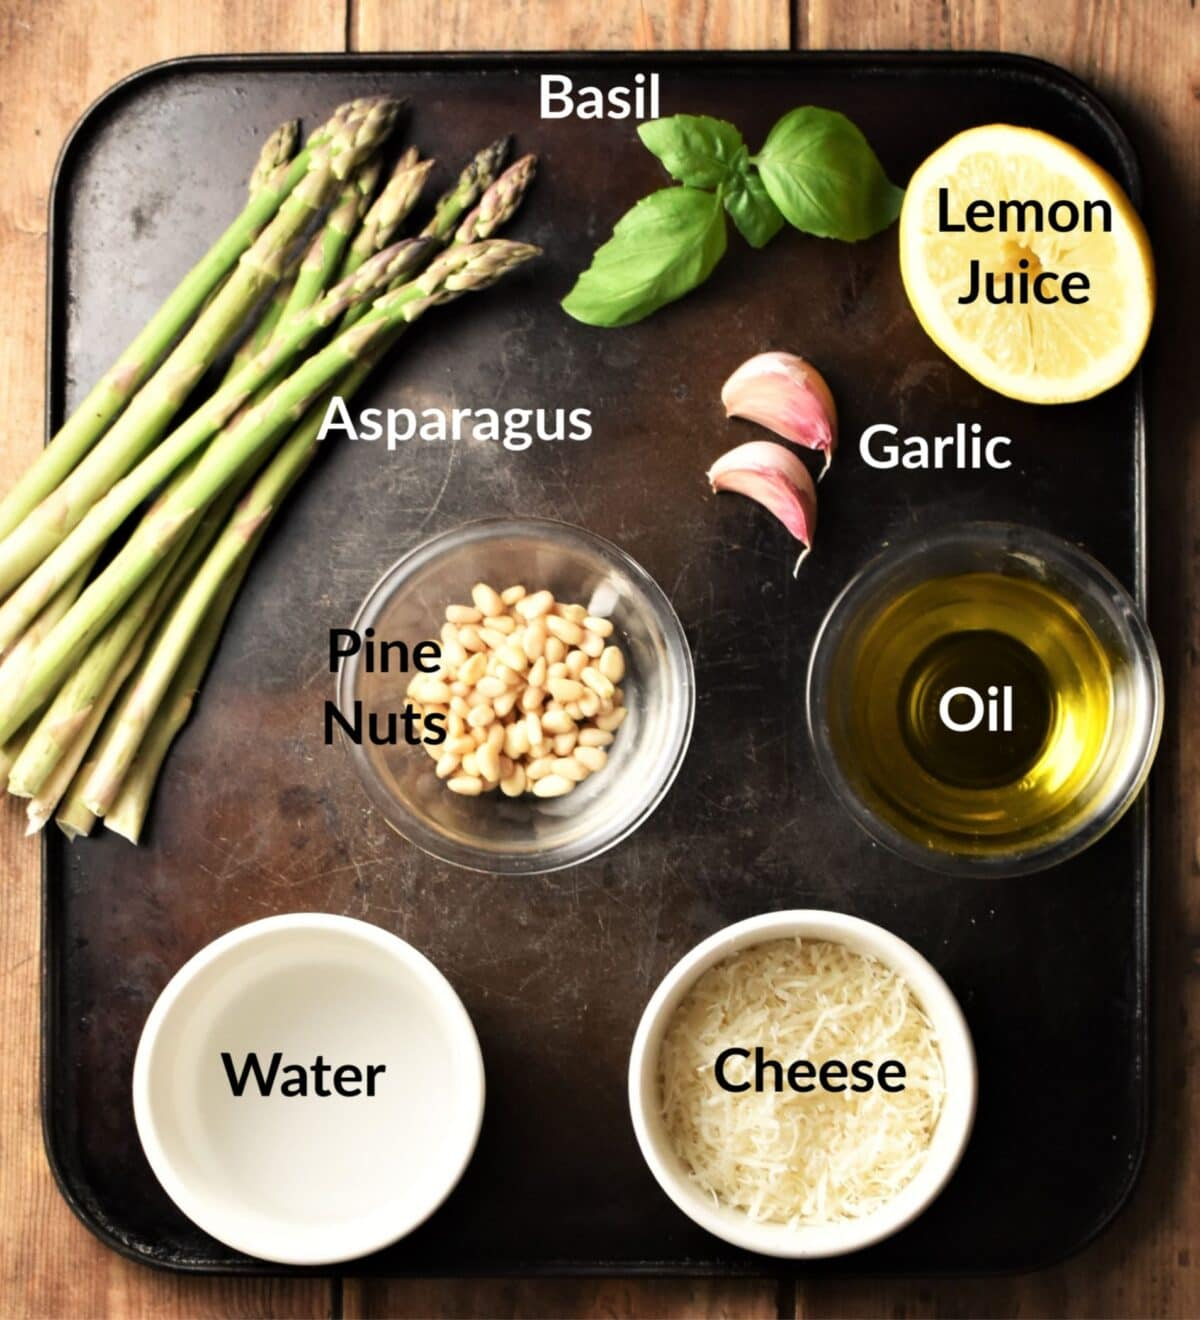 Asparagus pesto ingredients in individual dishes.